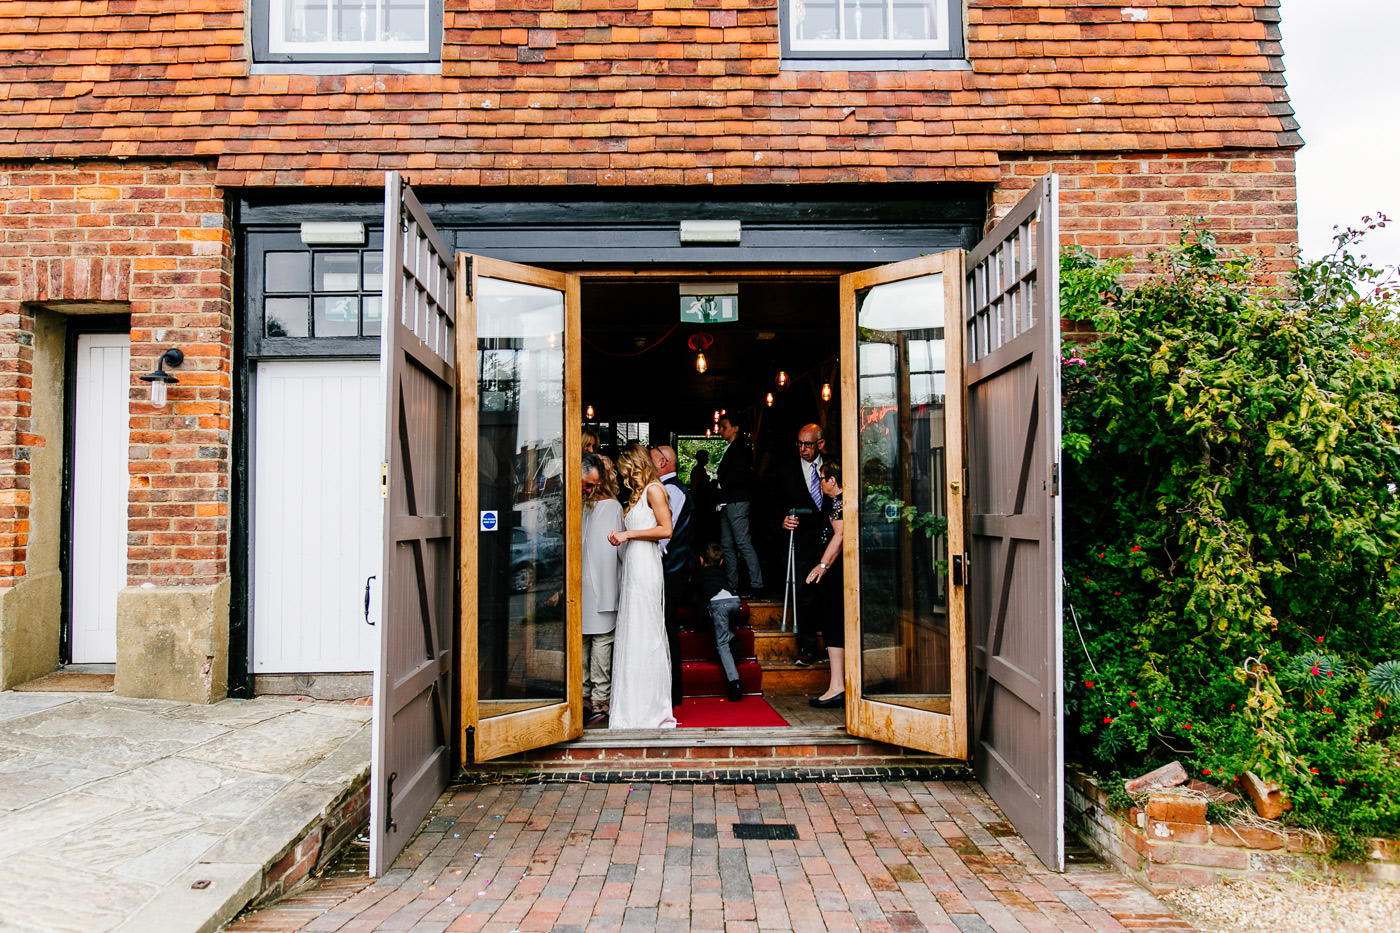 The-bell-in-Ticehurst-pub-kent-wedding-photographer-London-Epic-Love-Story-067